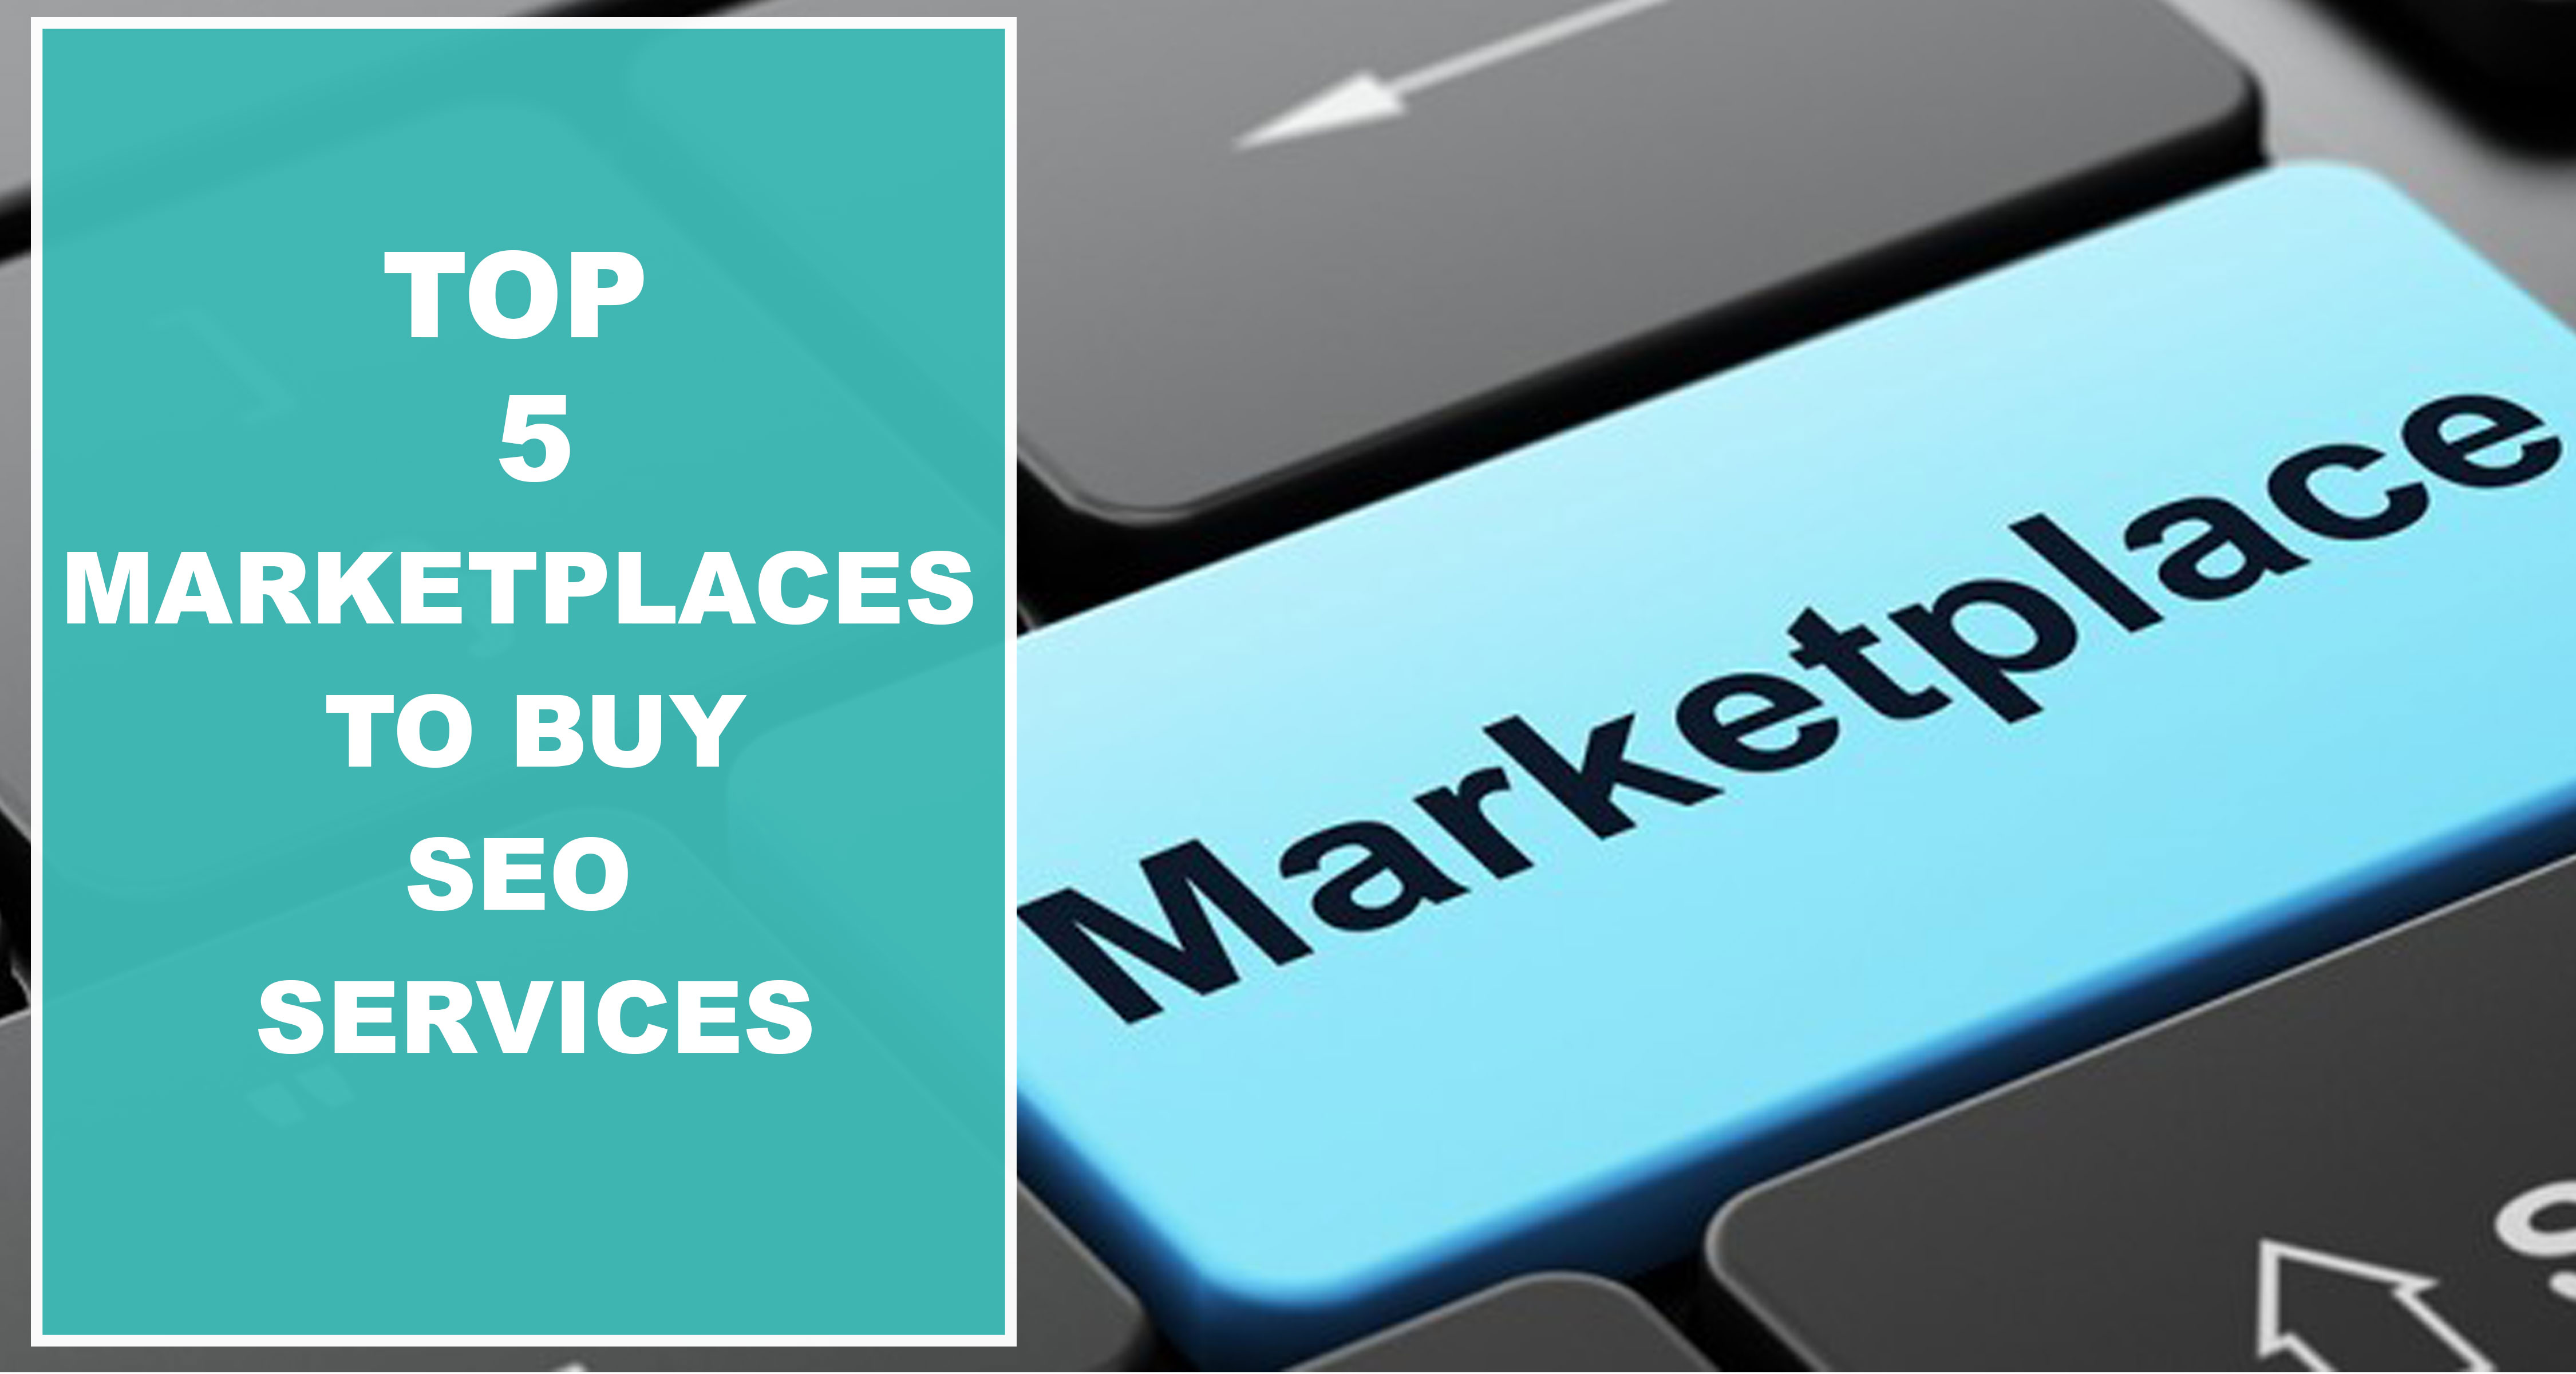 Top-5-marketplaces-to-buy-seo-service-1.